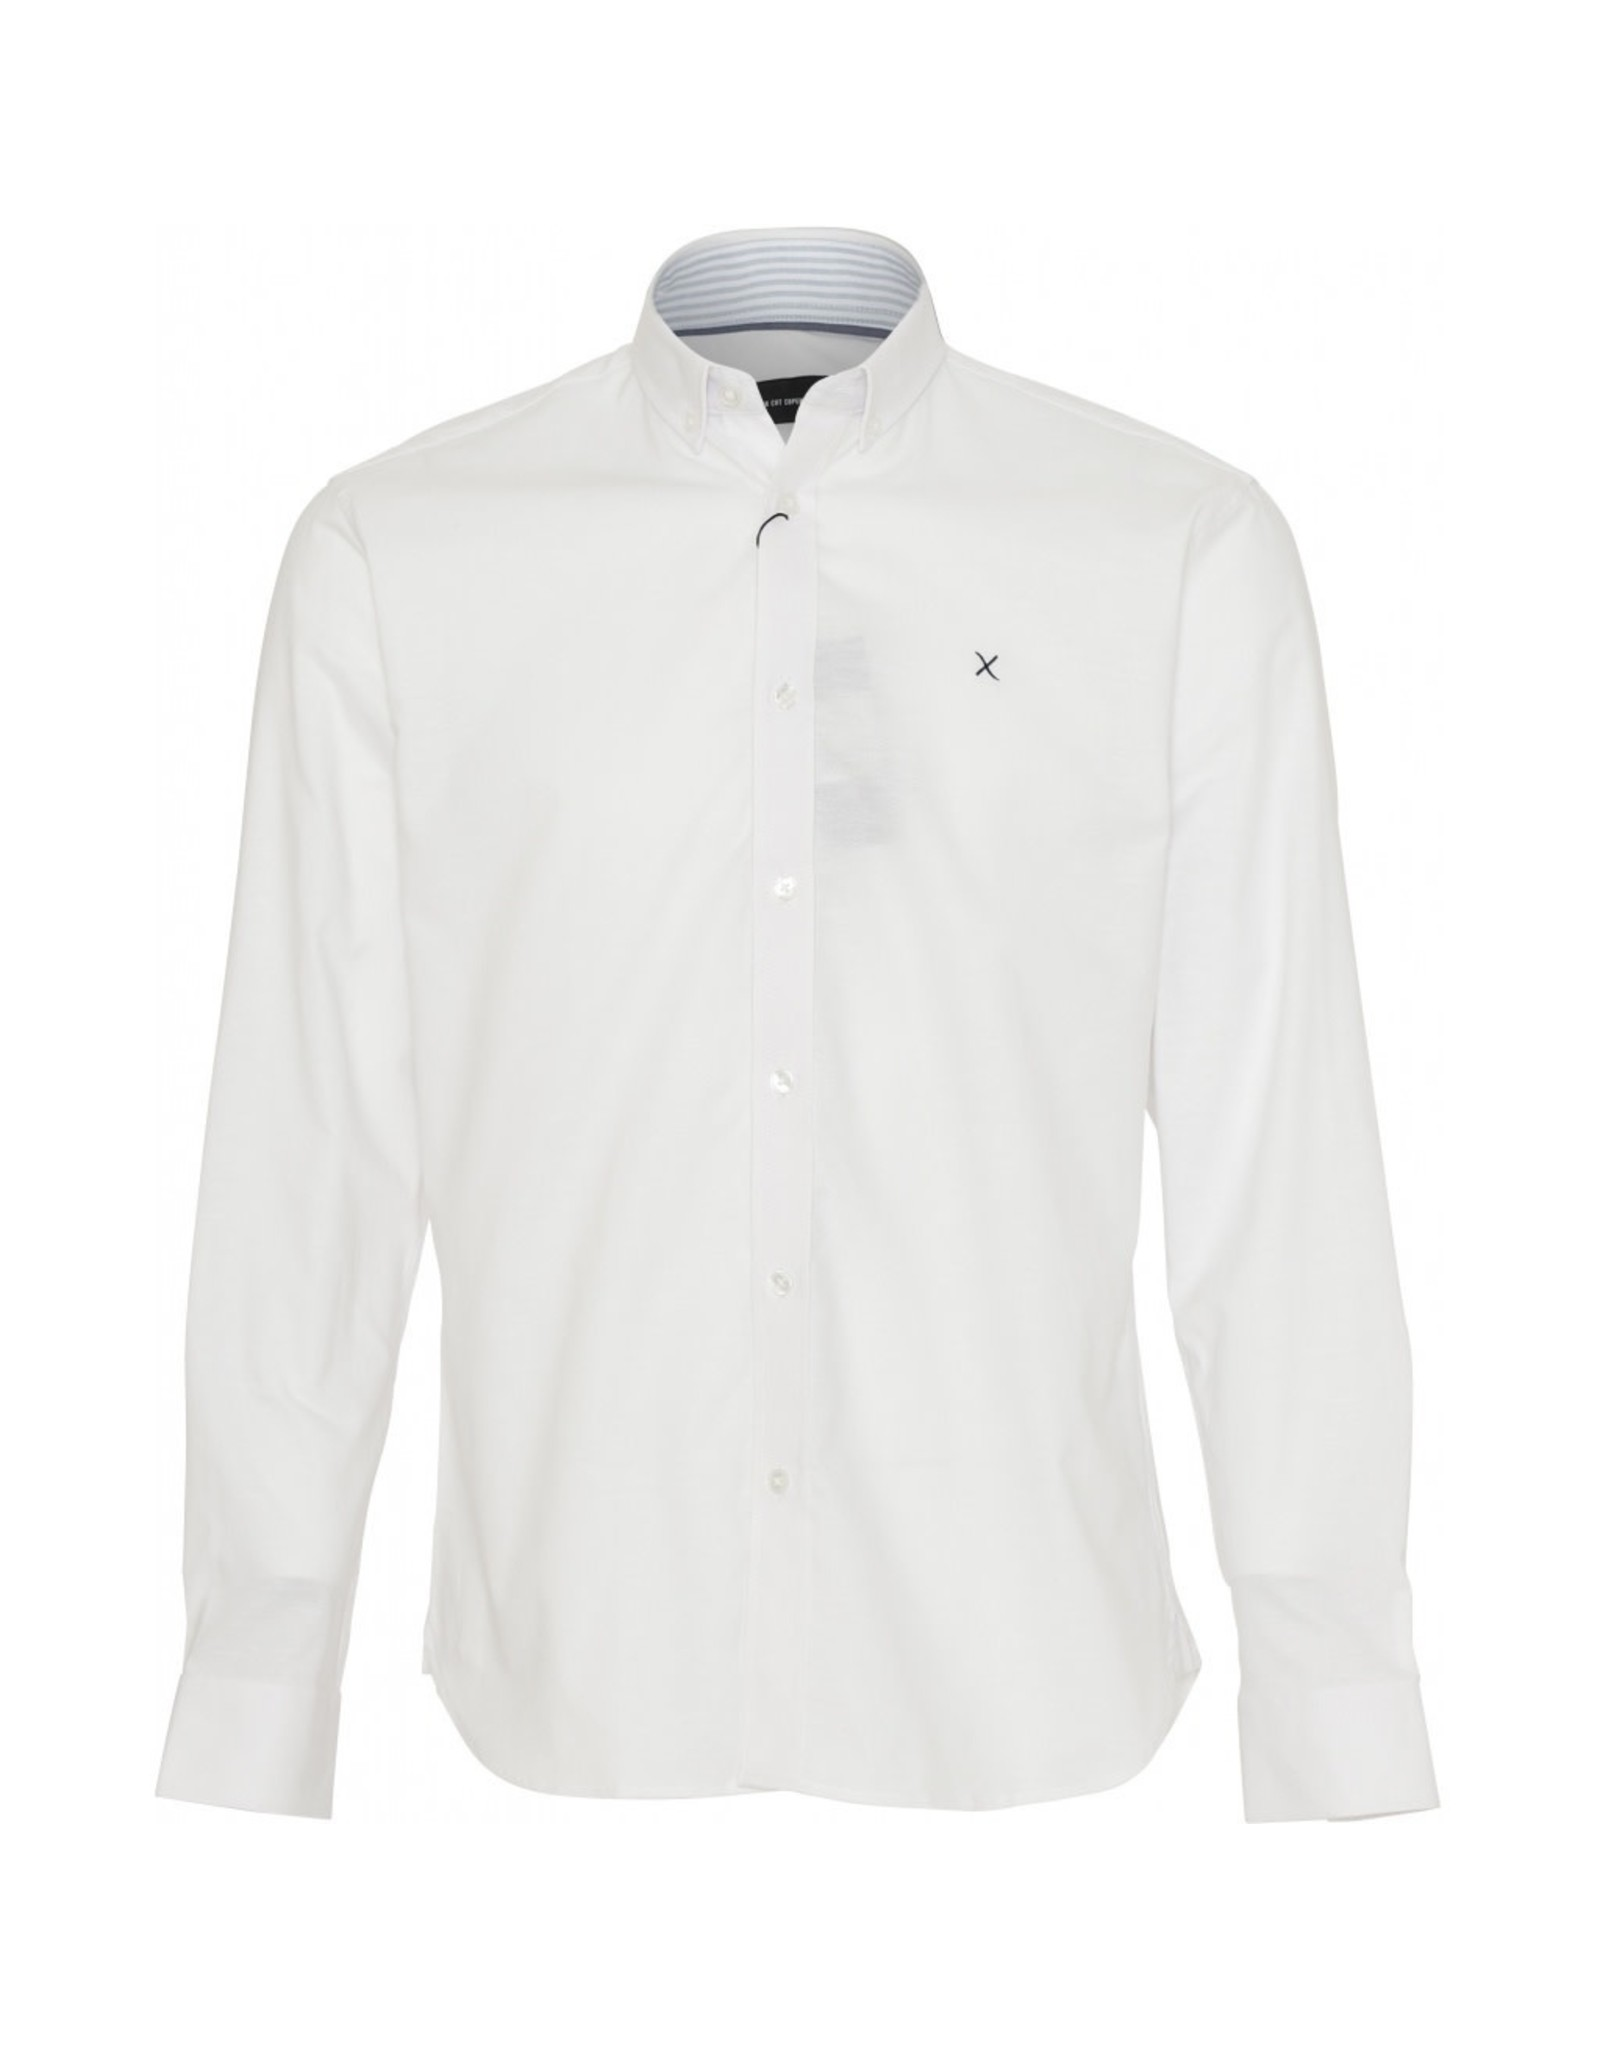 Clean Cut Copenhagen Oxford Shirt